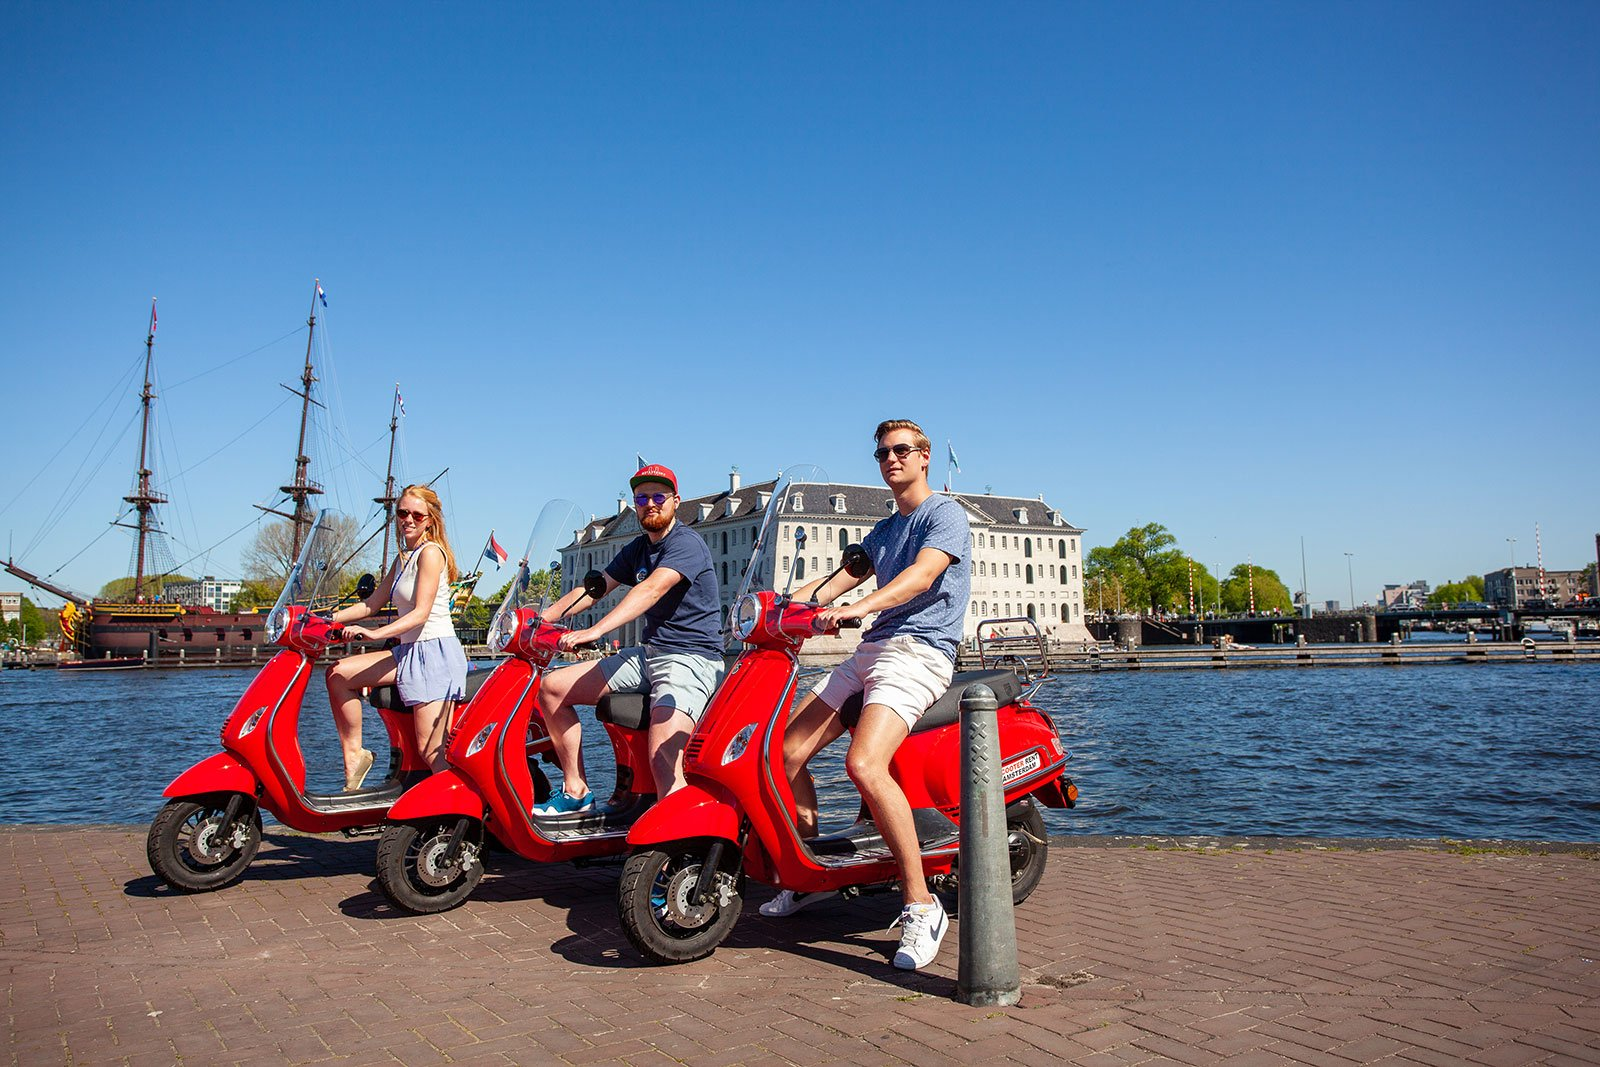 Super Scooter Rent Amsterdam - Huur een scooter in Amsterdam UH-28